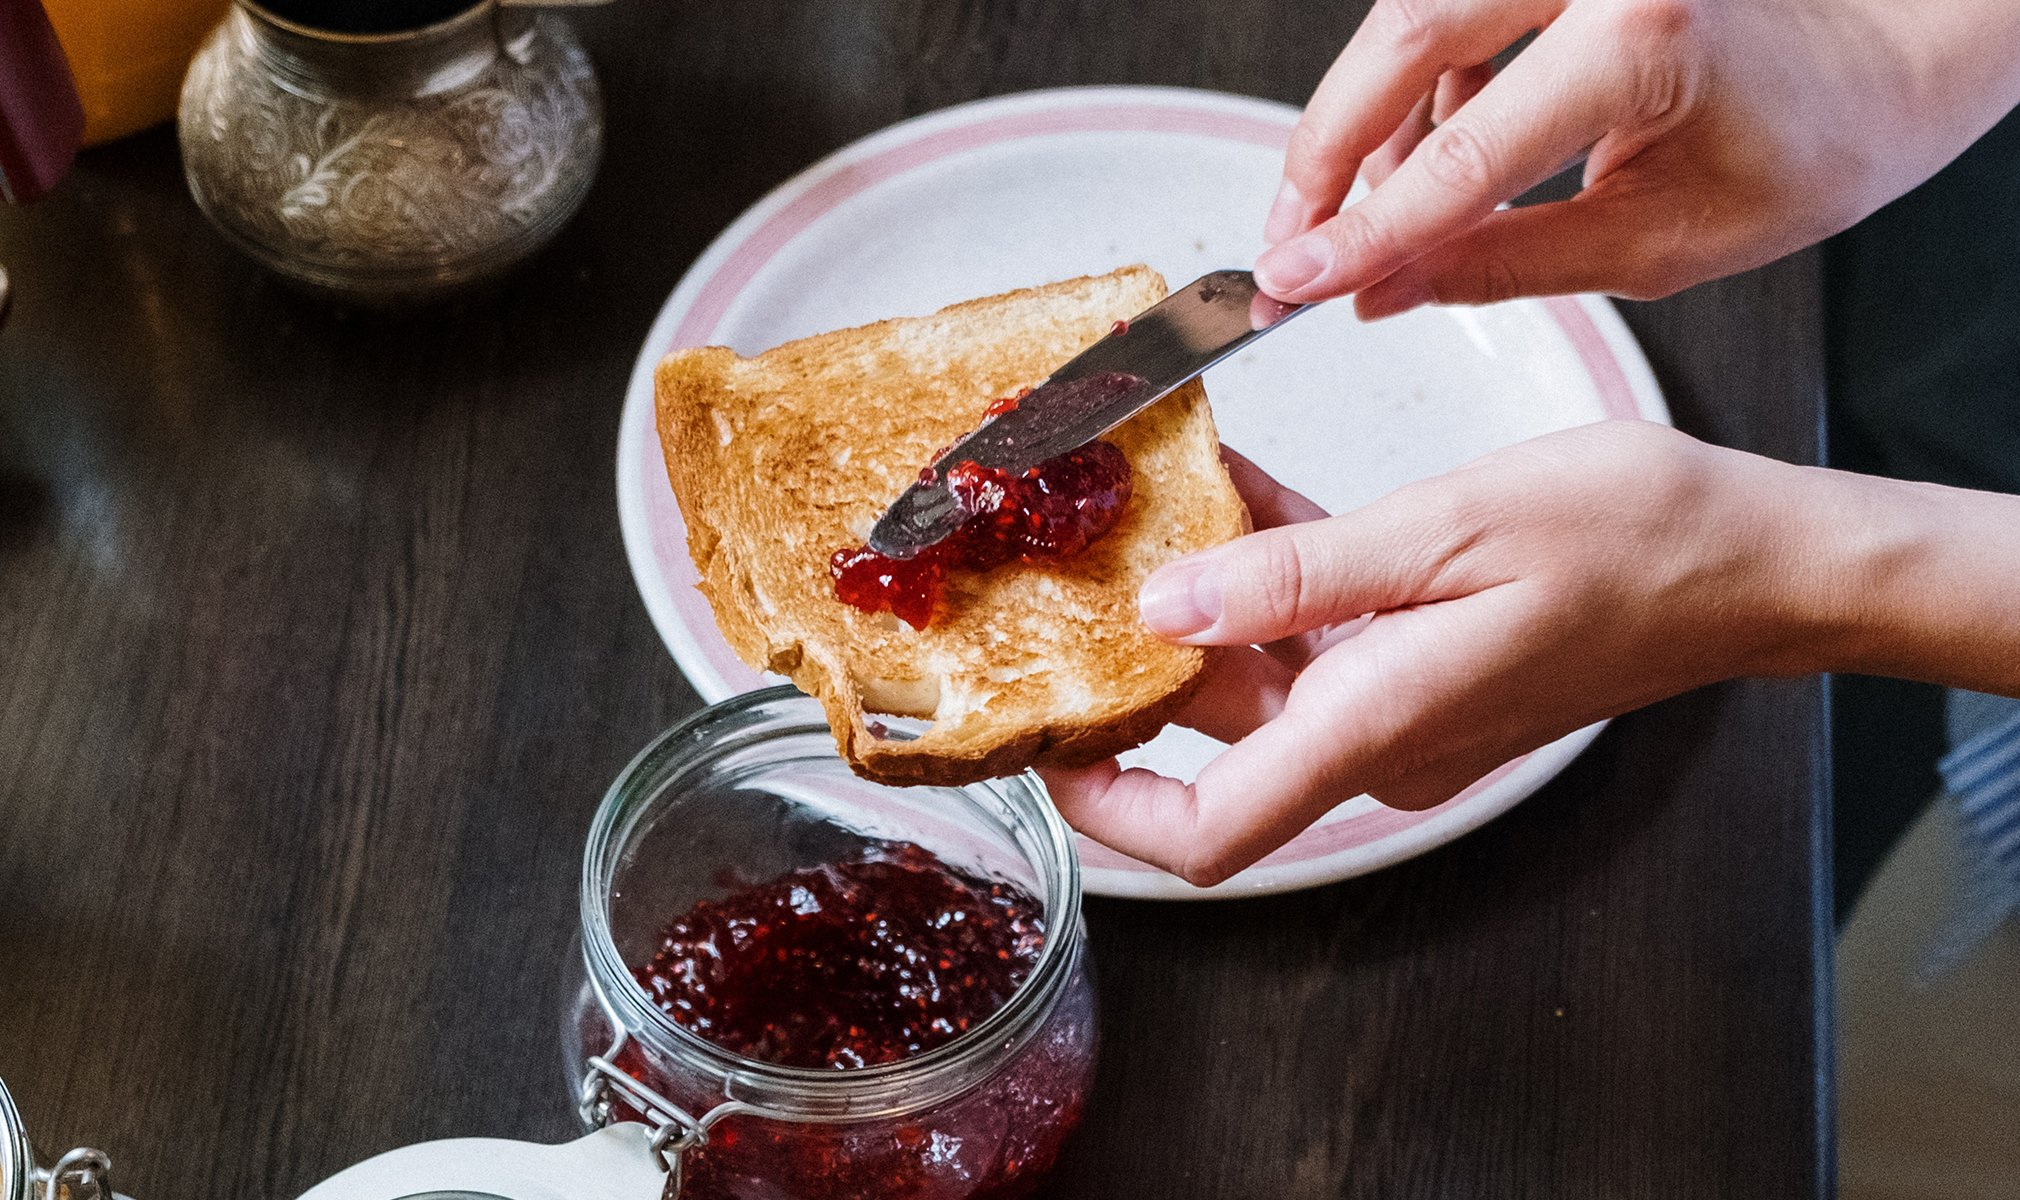 A piece of bread with jam in it